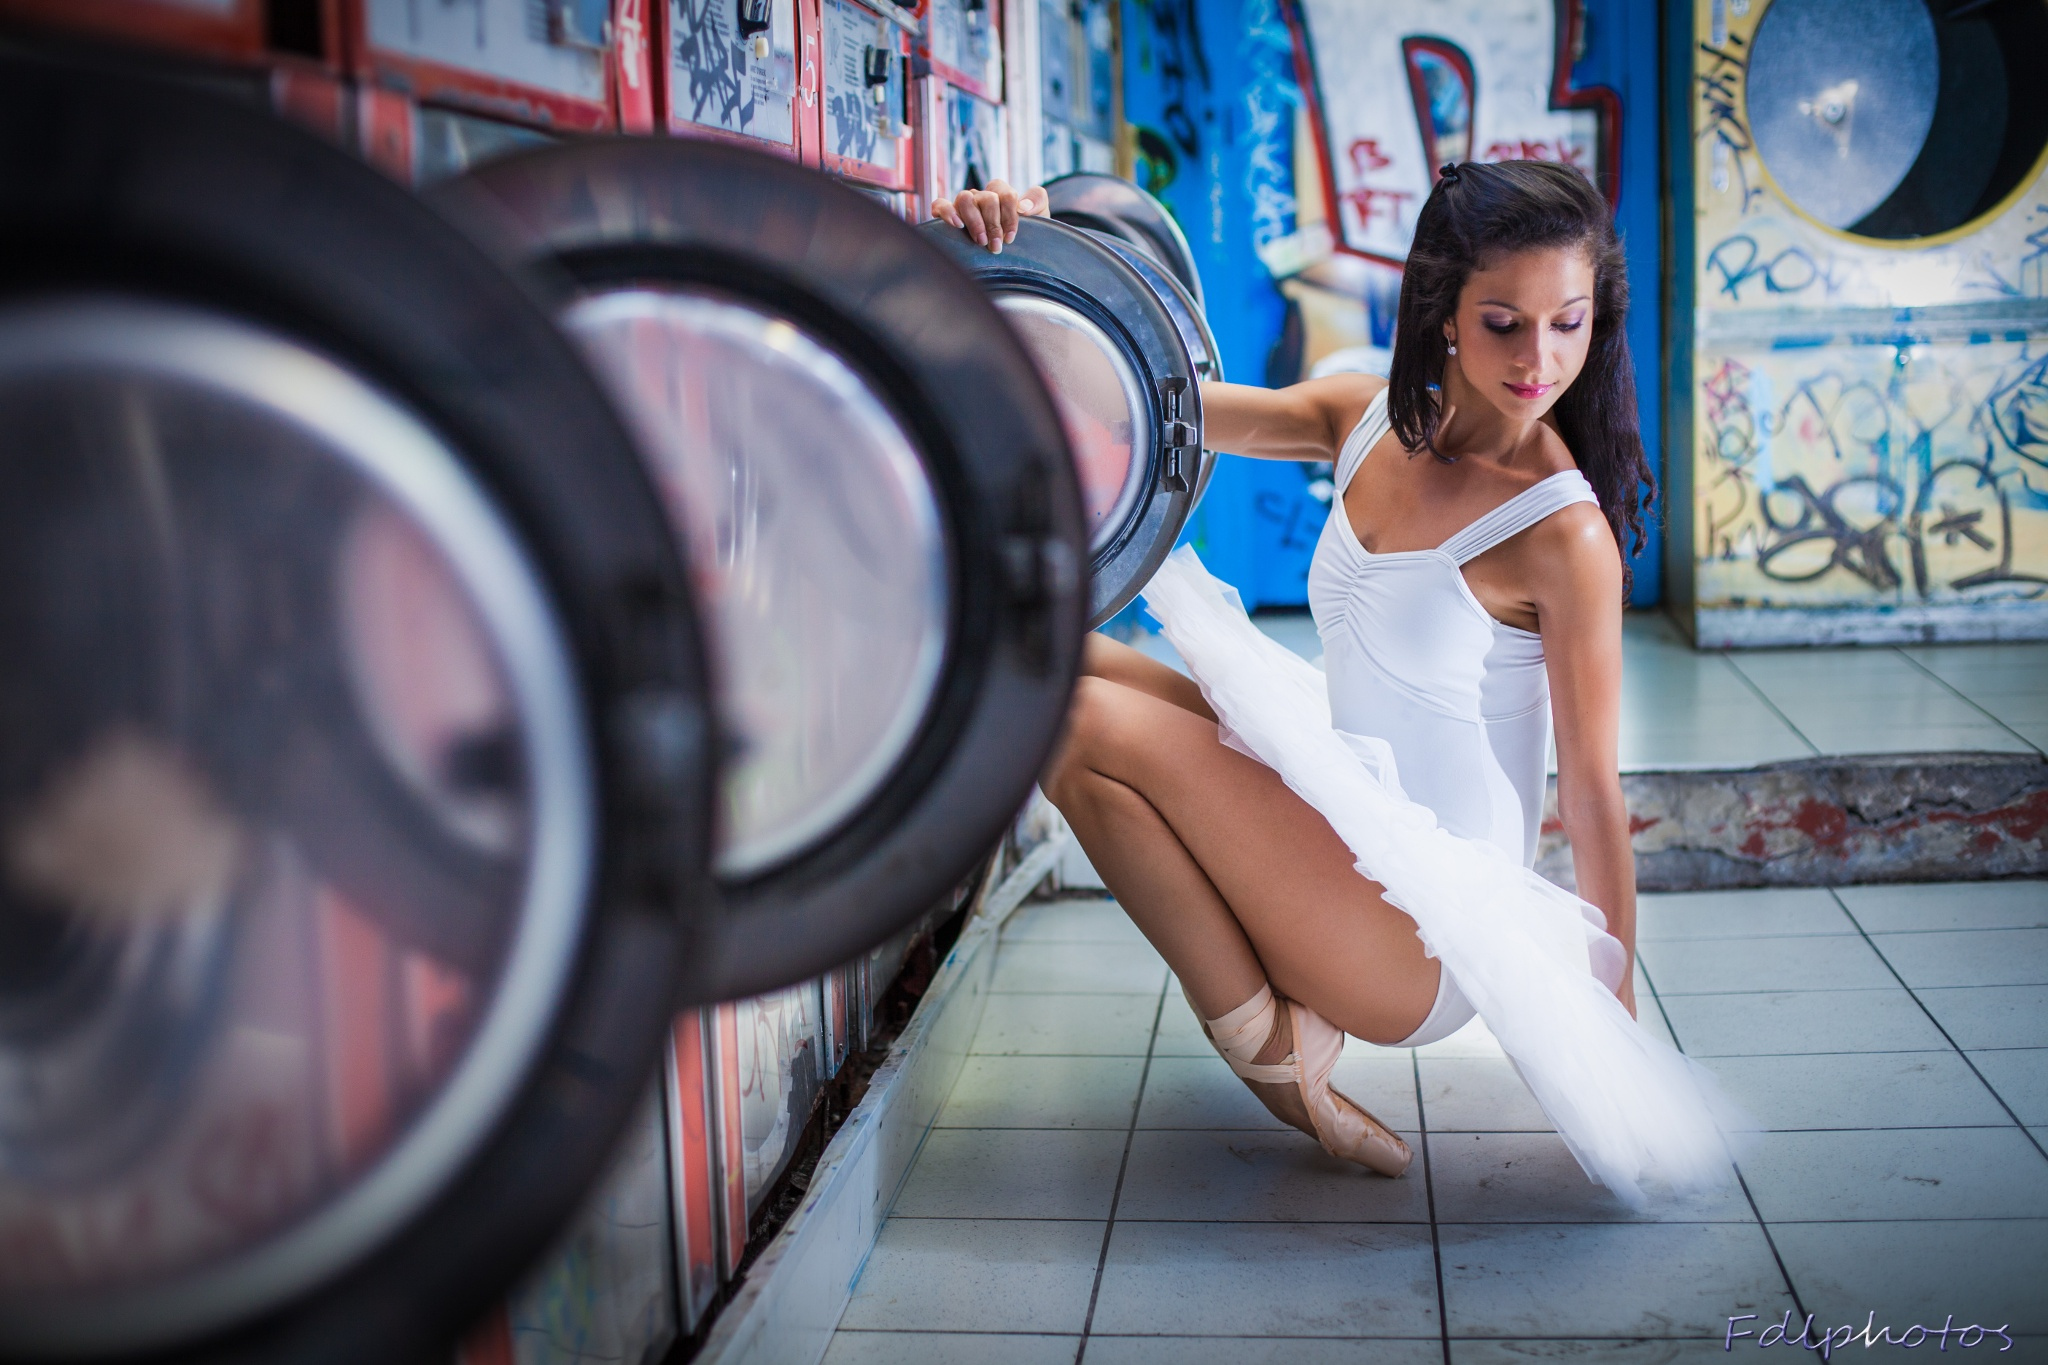 a ballerina in a laundromat